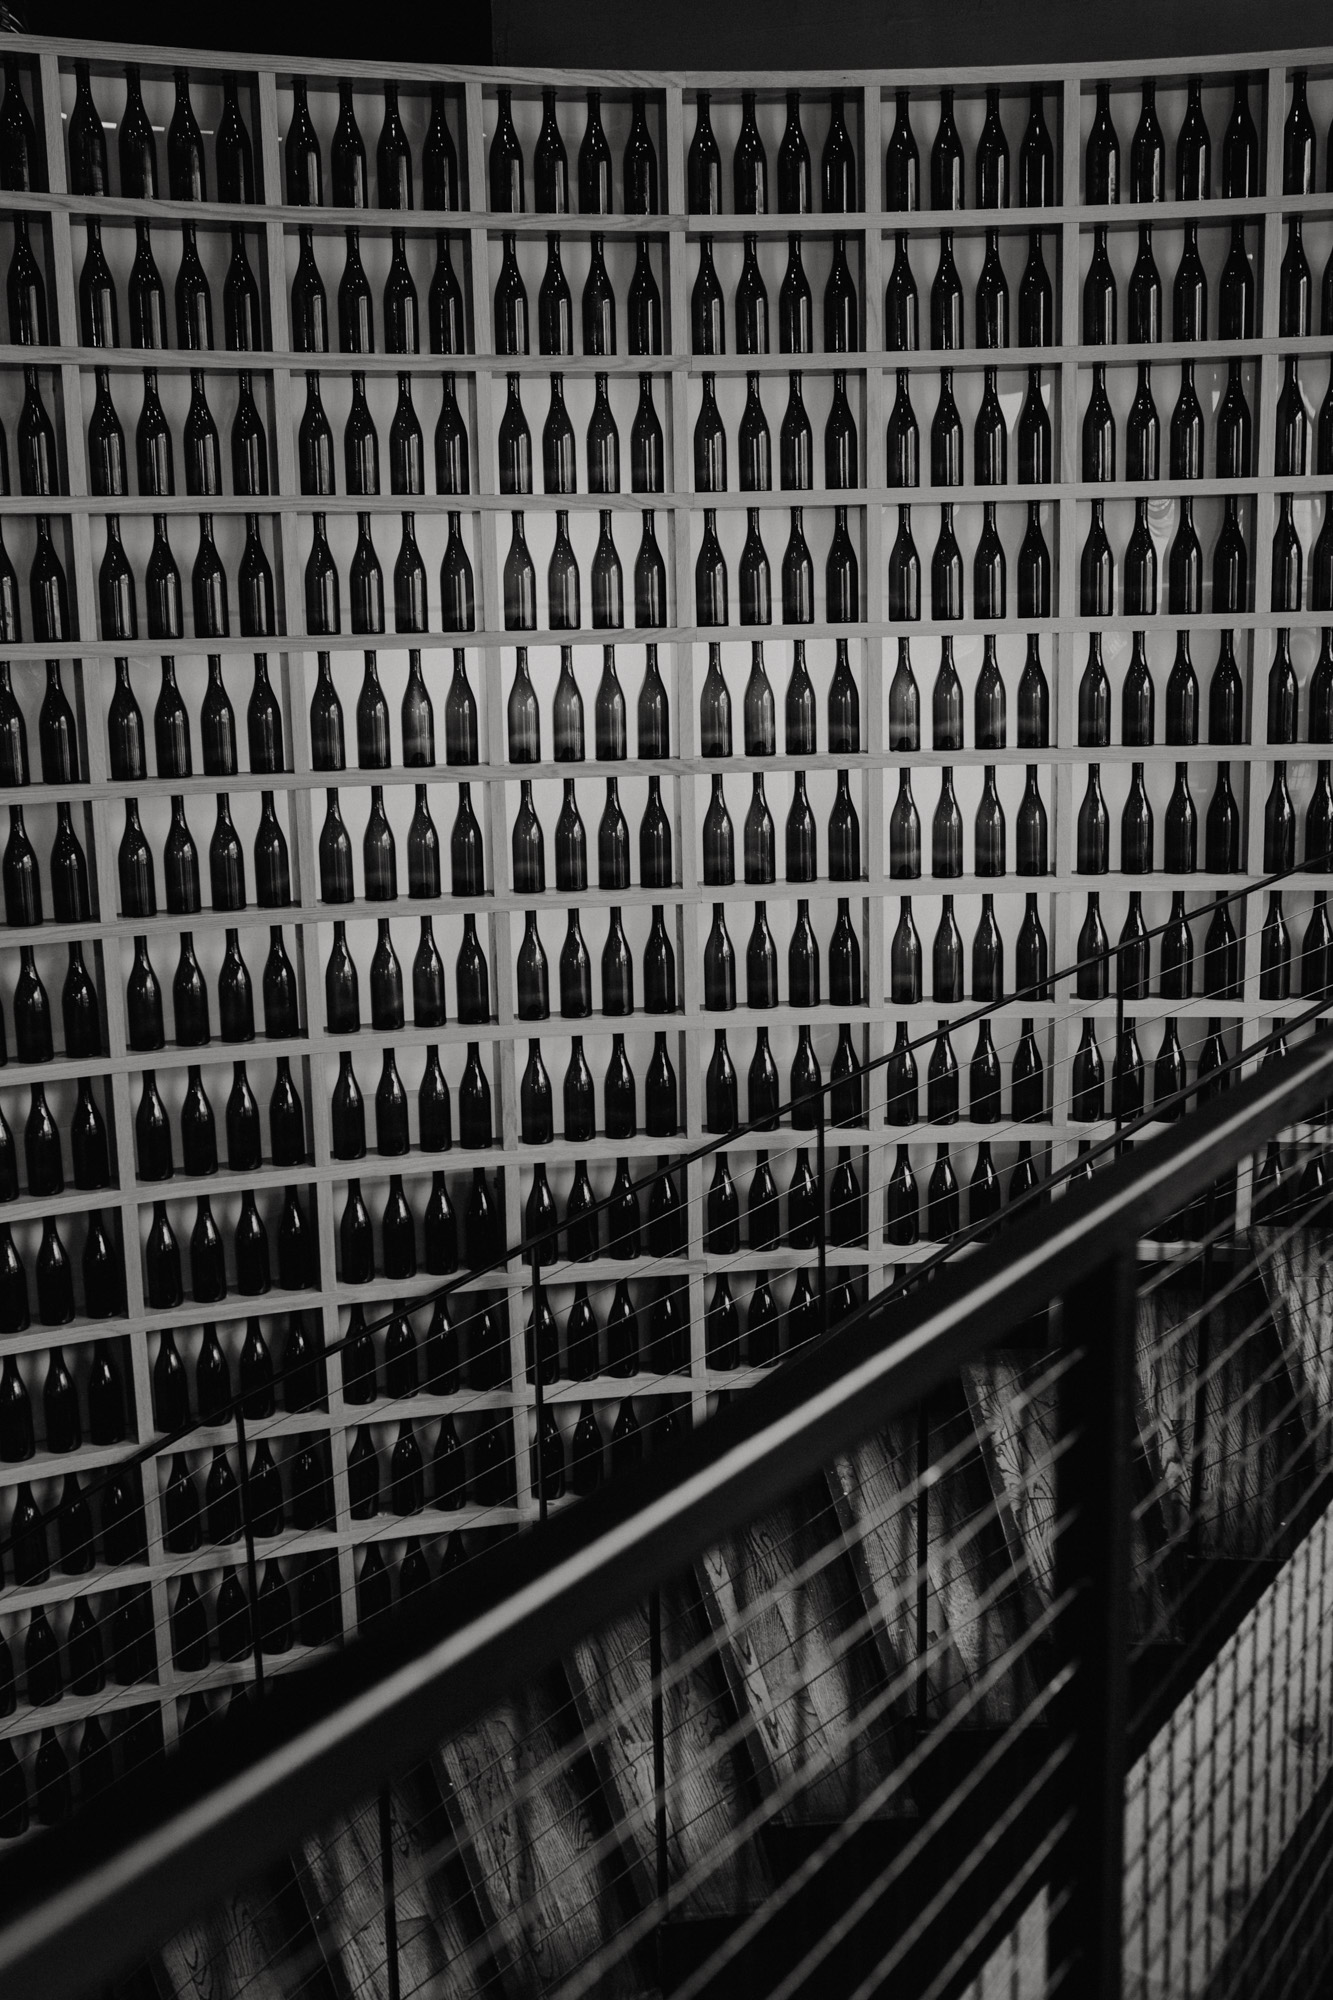 A wall of wine bottles at City Winery Boston